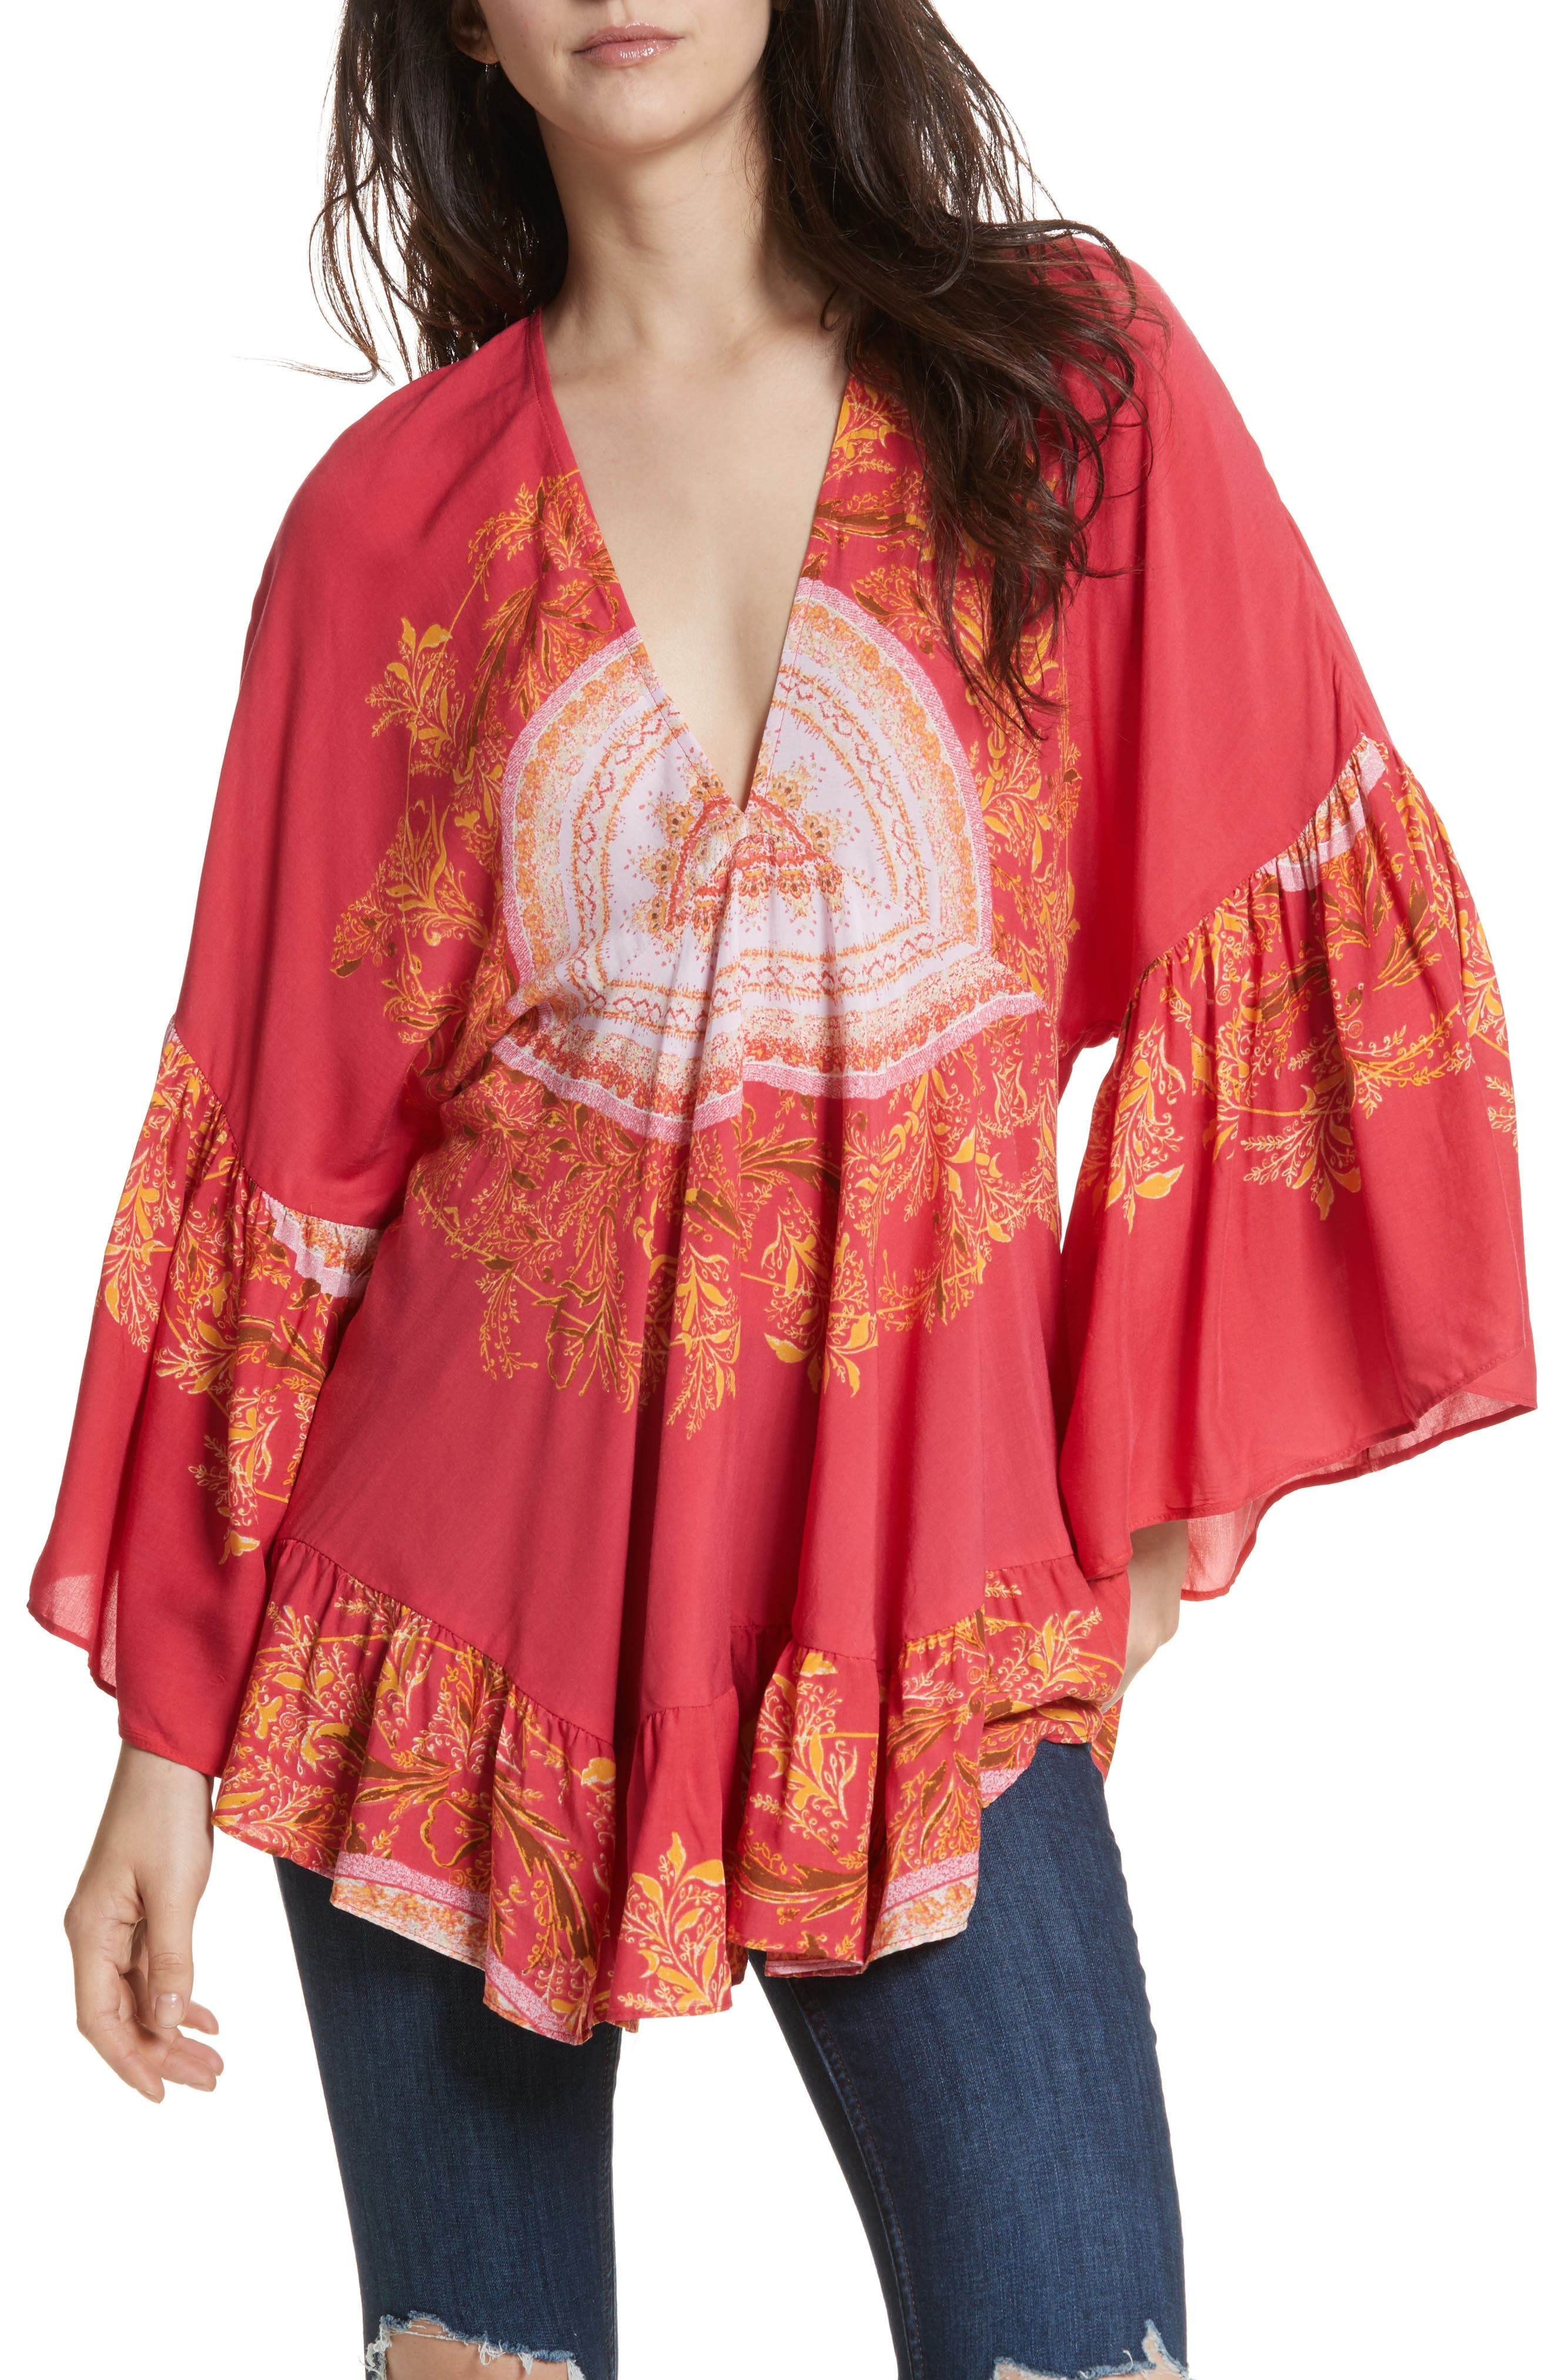 Main Image - Free People Sunset Dreams Ruffle Top